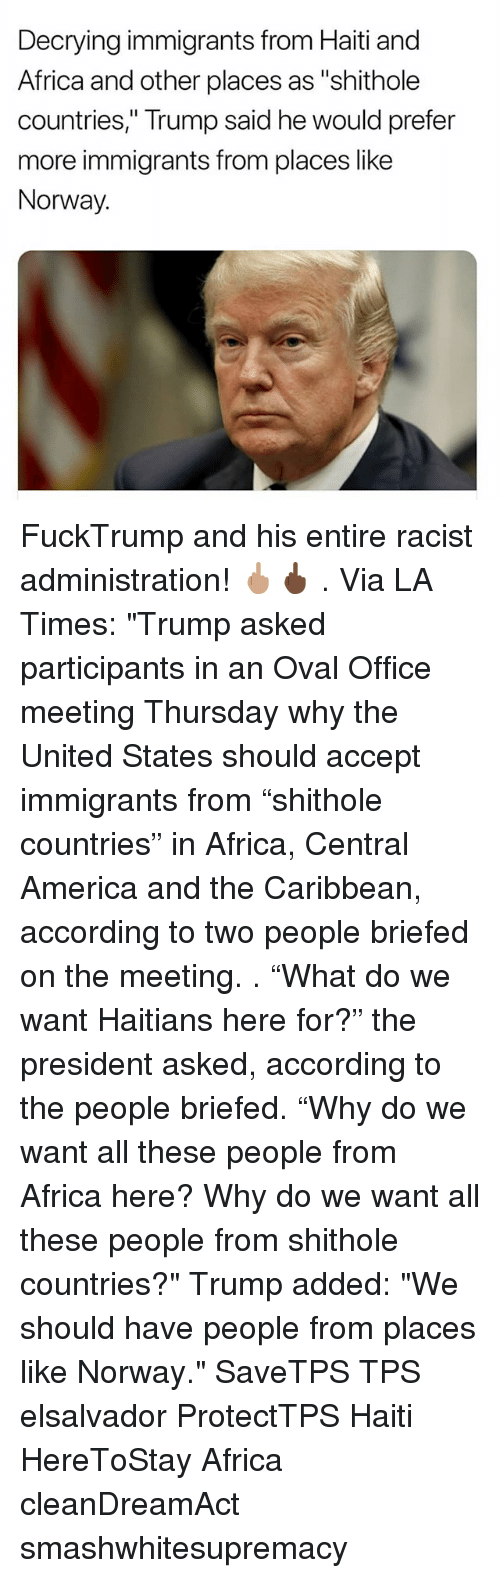 "oval office: Decrying immigrants from Haiti and  Africa and other places as ""shithole  countries,"" Trump said he would prefer  more immigrants from places like  Norway. FuckTrump and his entire racist administration! 🖕🏽🖕🏿 . Via LA Times: ""Trump asked participants in an Oval Office meeting Thursday why the United States should accept immigrants from ""shithole countries"" in Africa, Central America and the Caribbean, according to two people briefed on the meeting. . ""What do we want Haitians here for?"" the president asked, according to the people briefed. ""Why do we want all these people from Africa here? Why do we want all these people from shithole countries?"" Trump added: ""We should have people from places like Norway."" SaveTPS TPS elsalvador ProtectTPS Haiti HereToStay Africa cleanDreamAct smashwhitesupremacy"